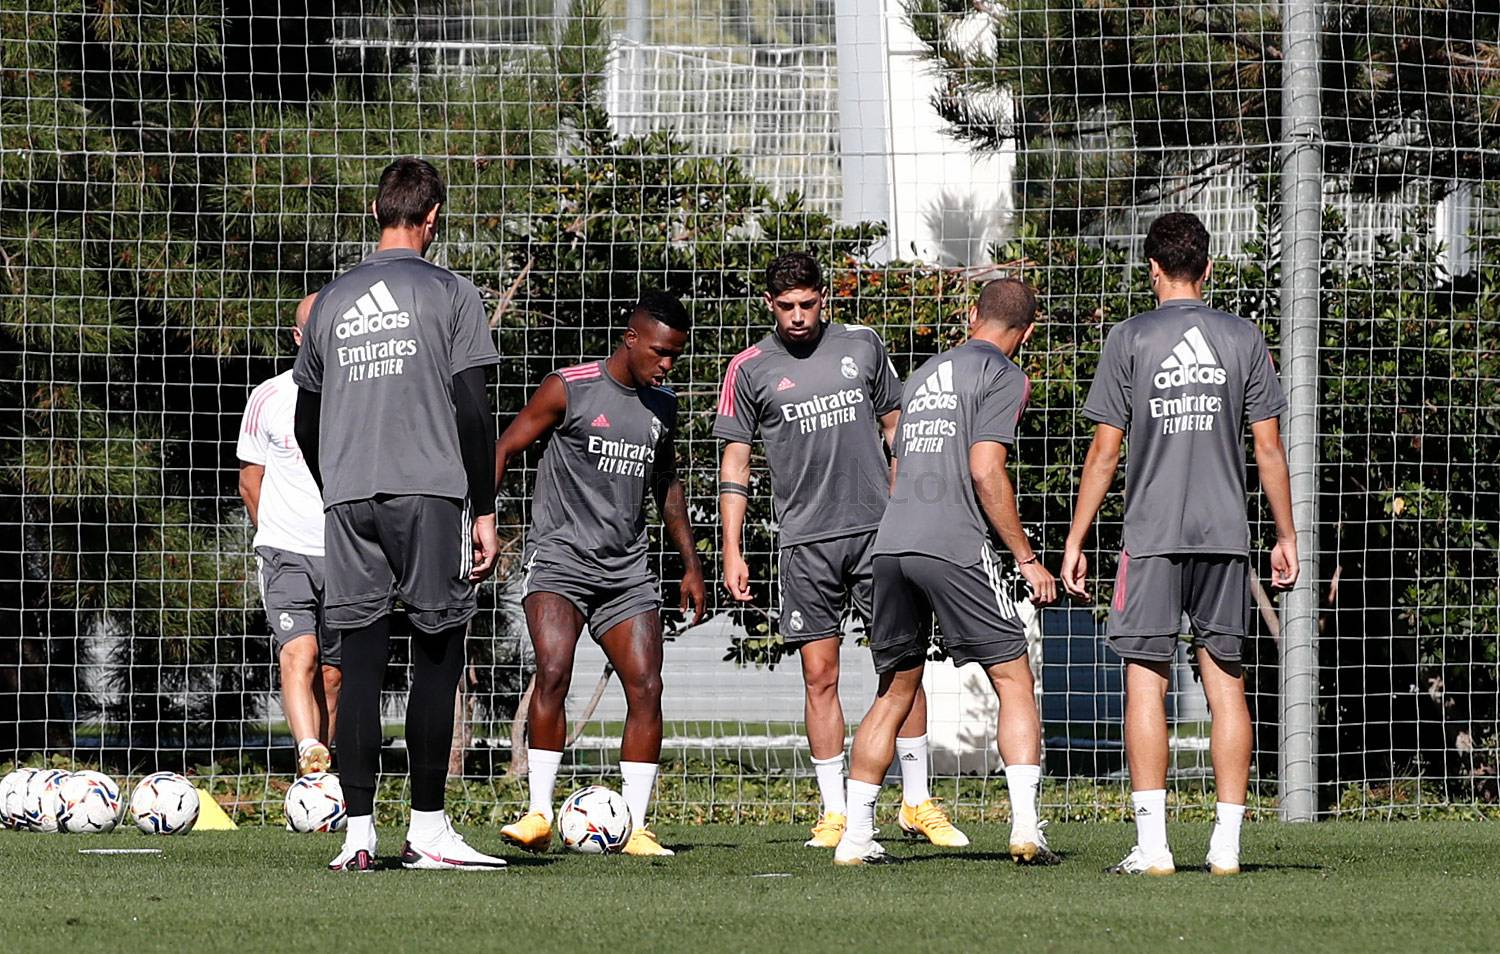 Real Madrid - Entrenamiento del Real Madrid  - 06-09-2020